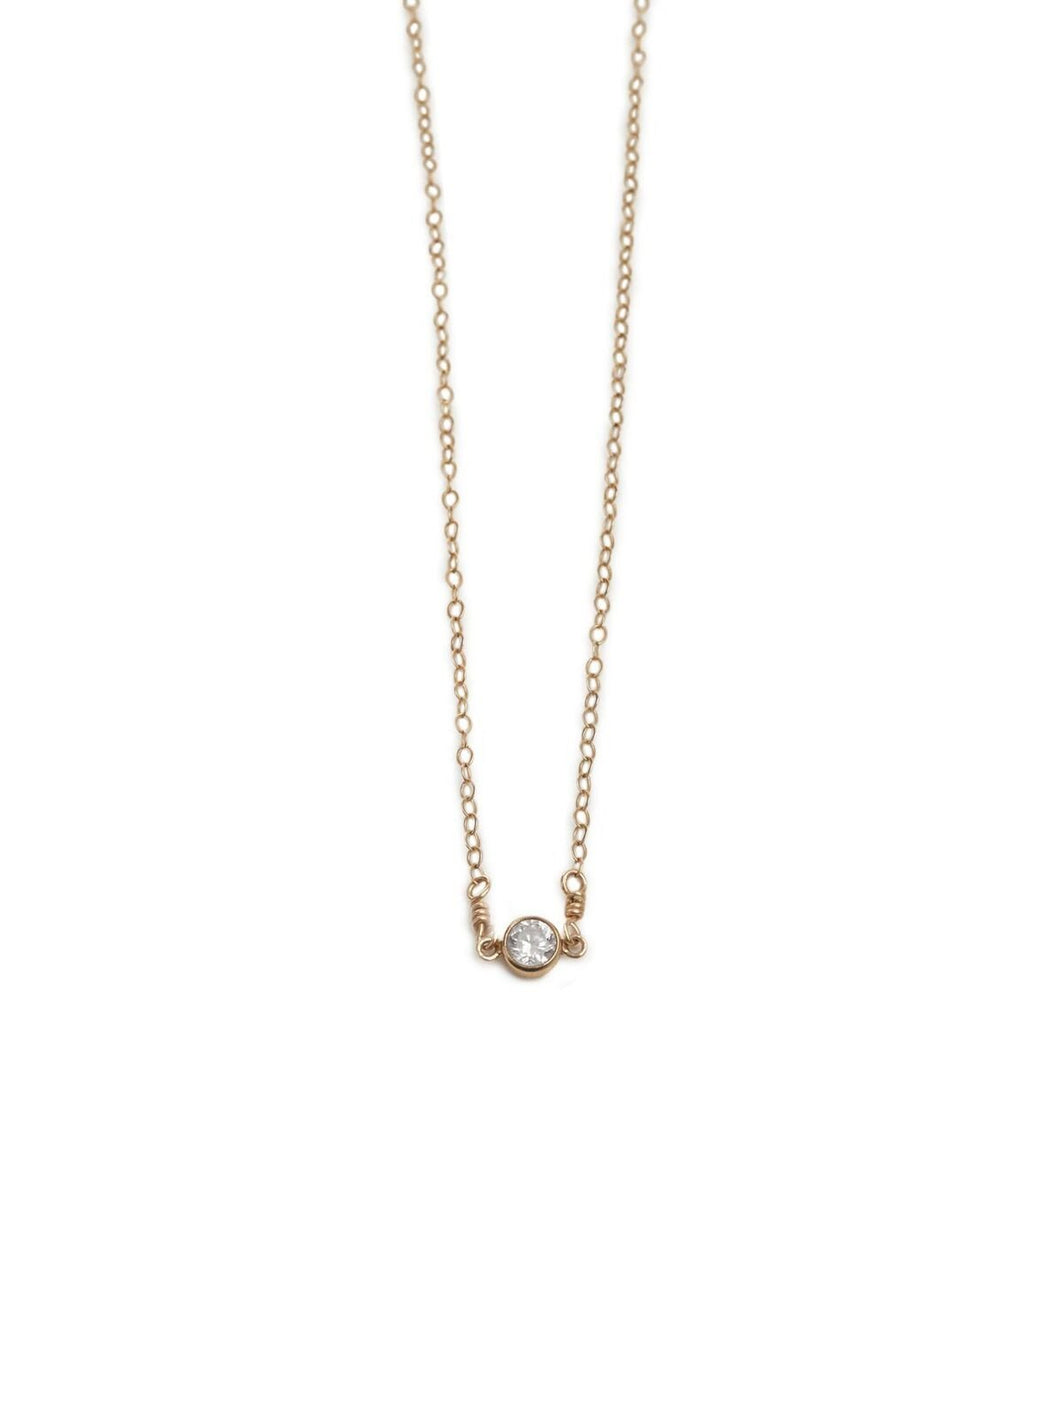 ABLE Lumiere Necklace